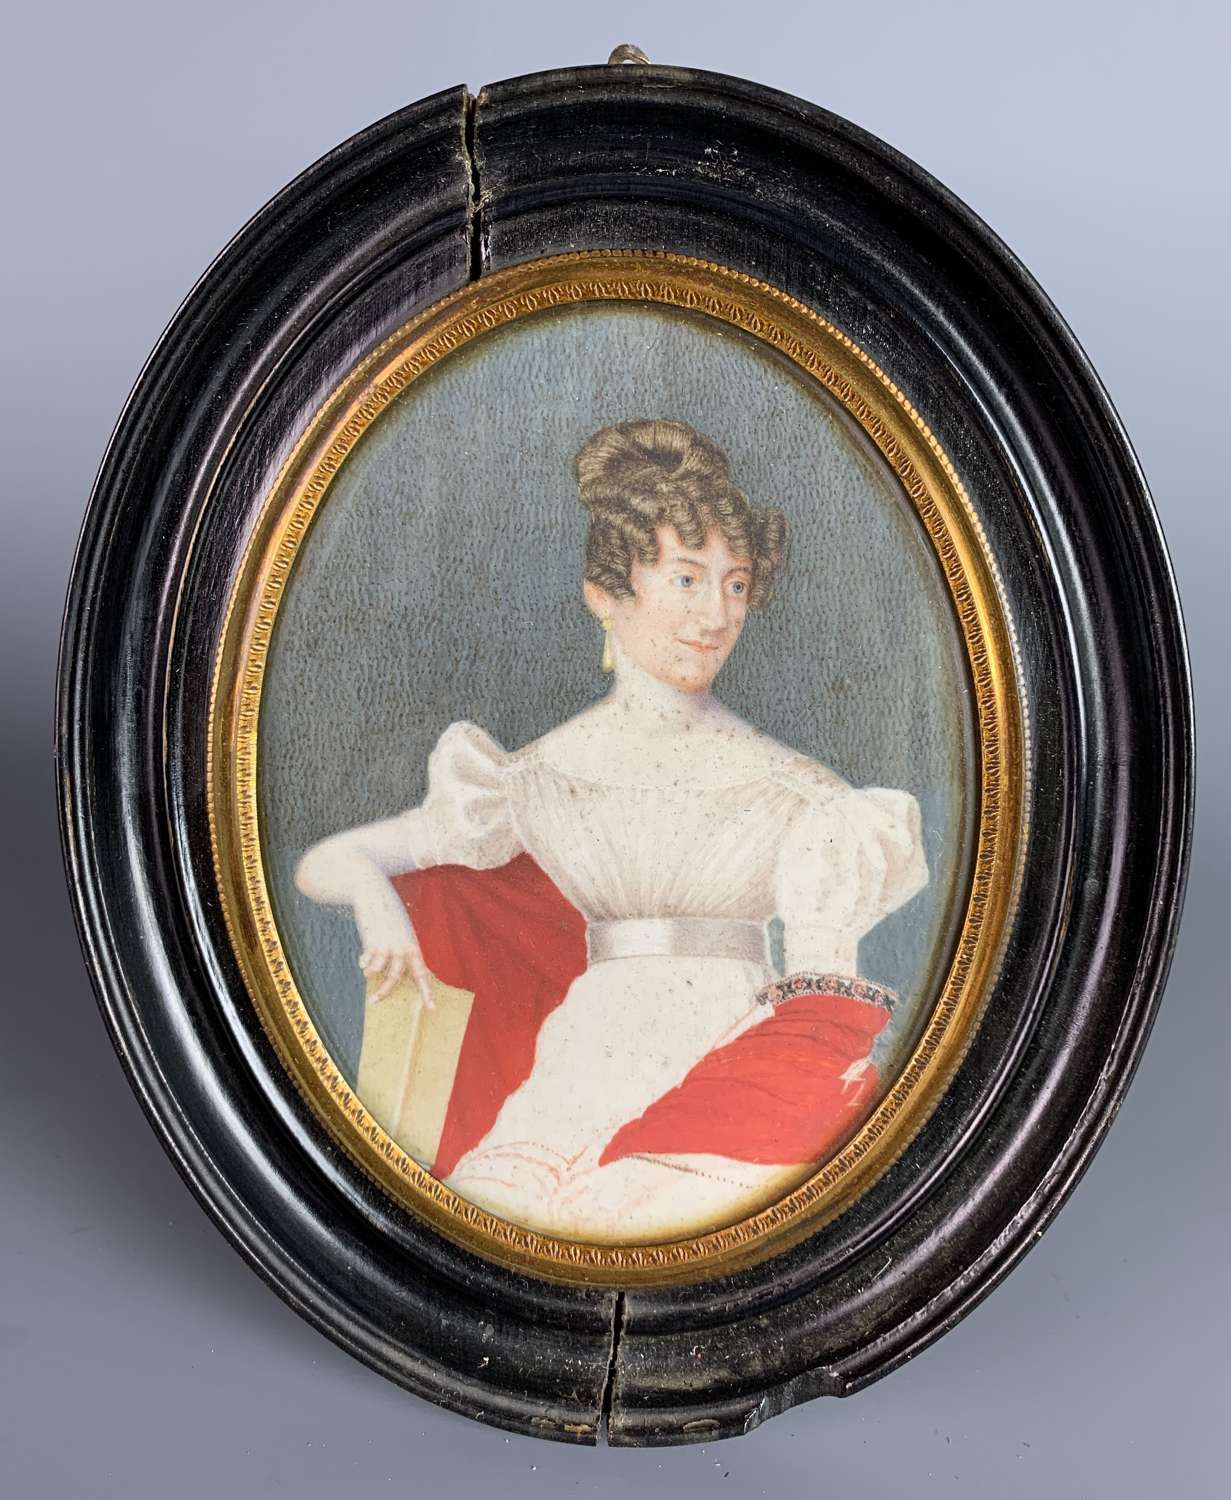 Regency Watercolour Portrait Miniature of a Lady in a Red Shawl